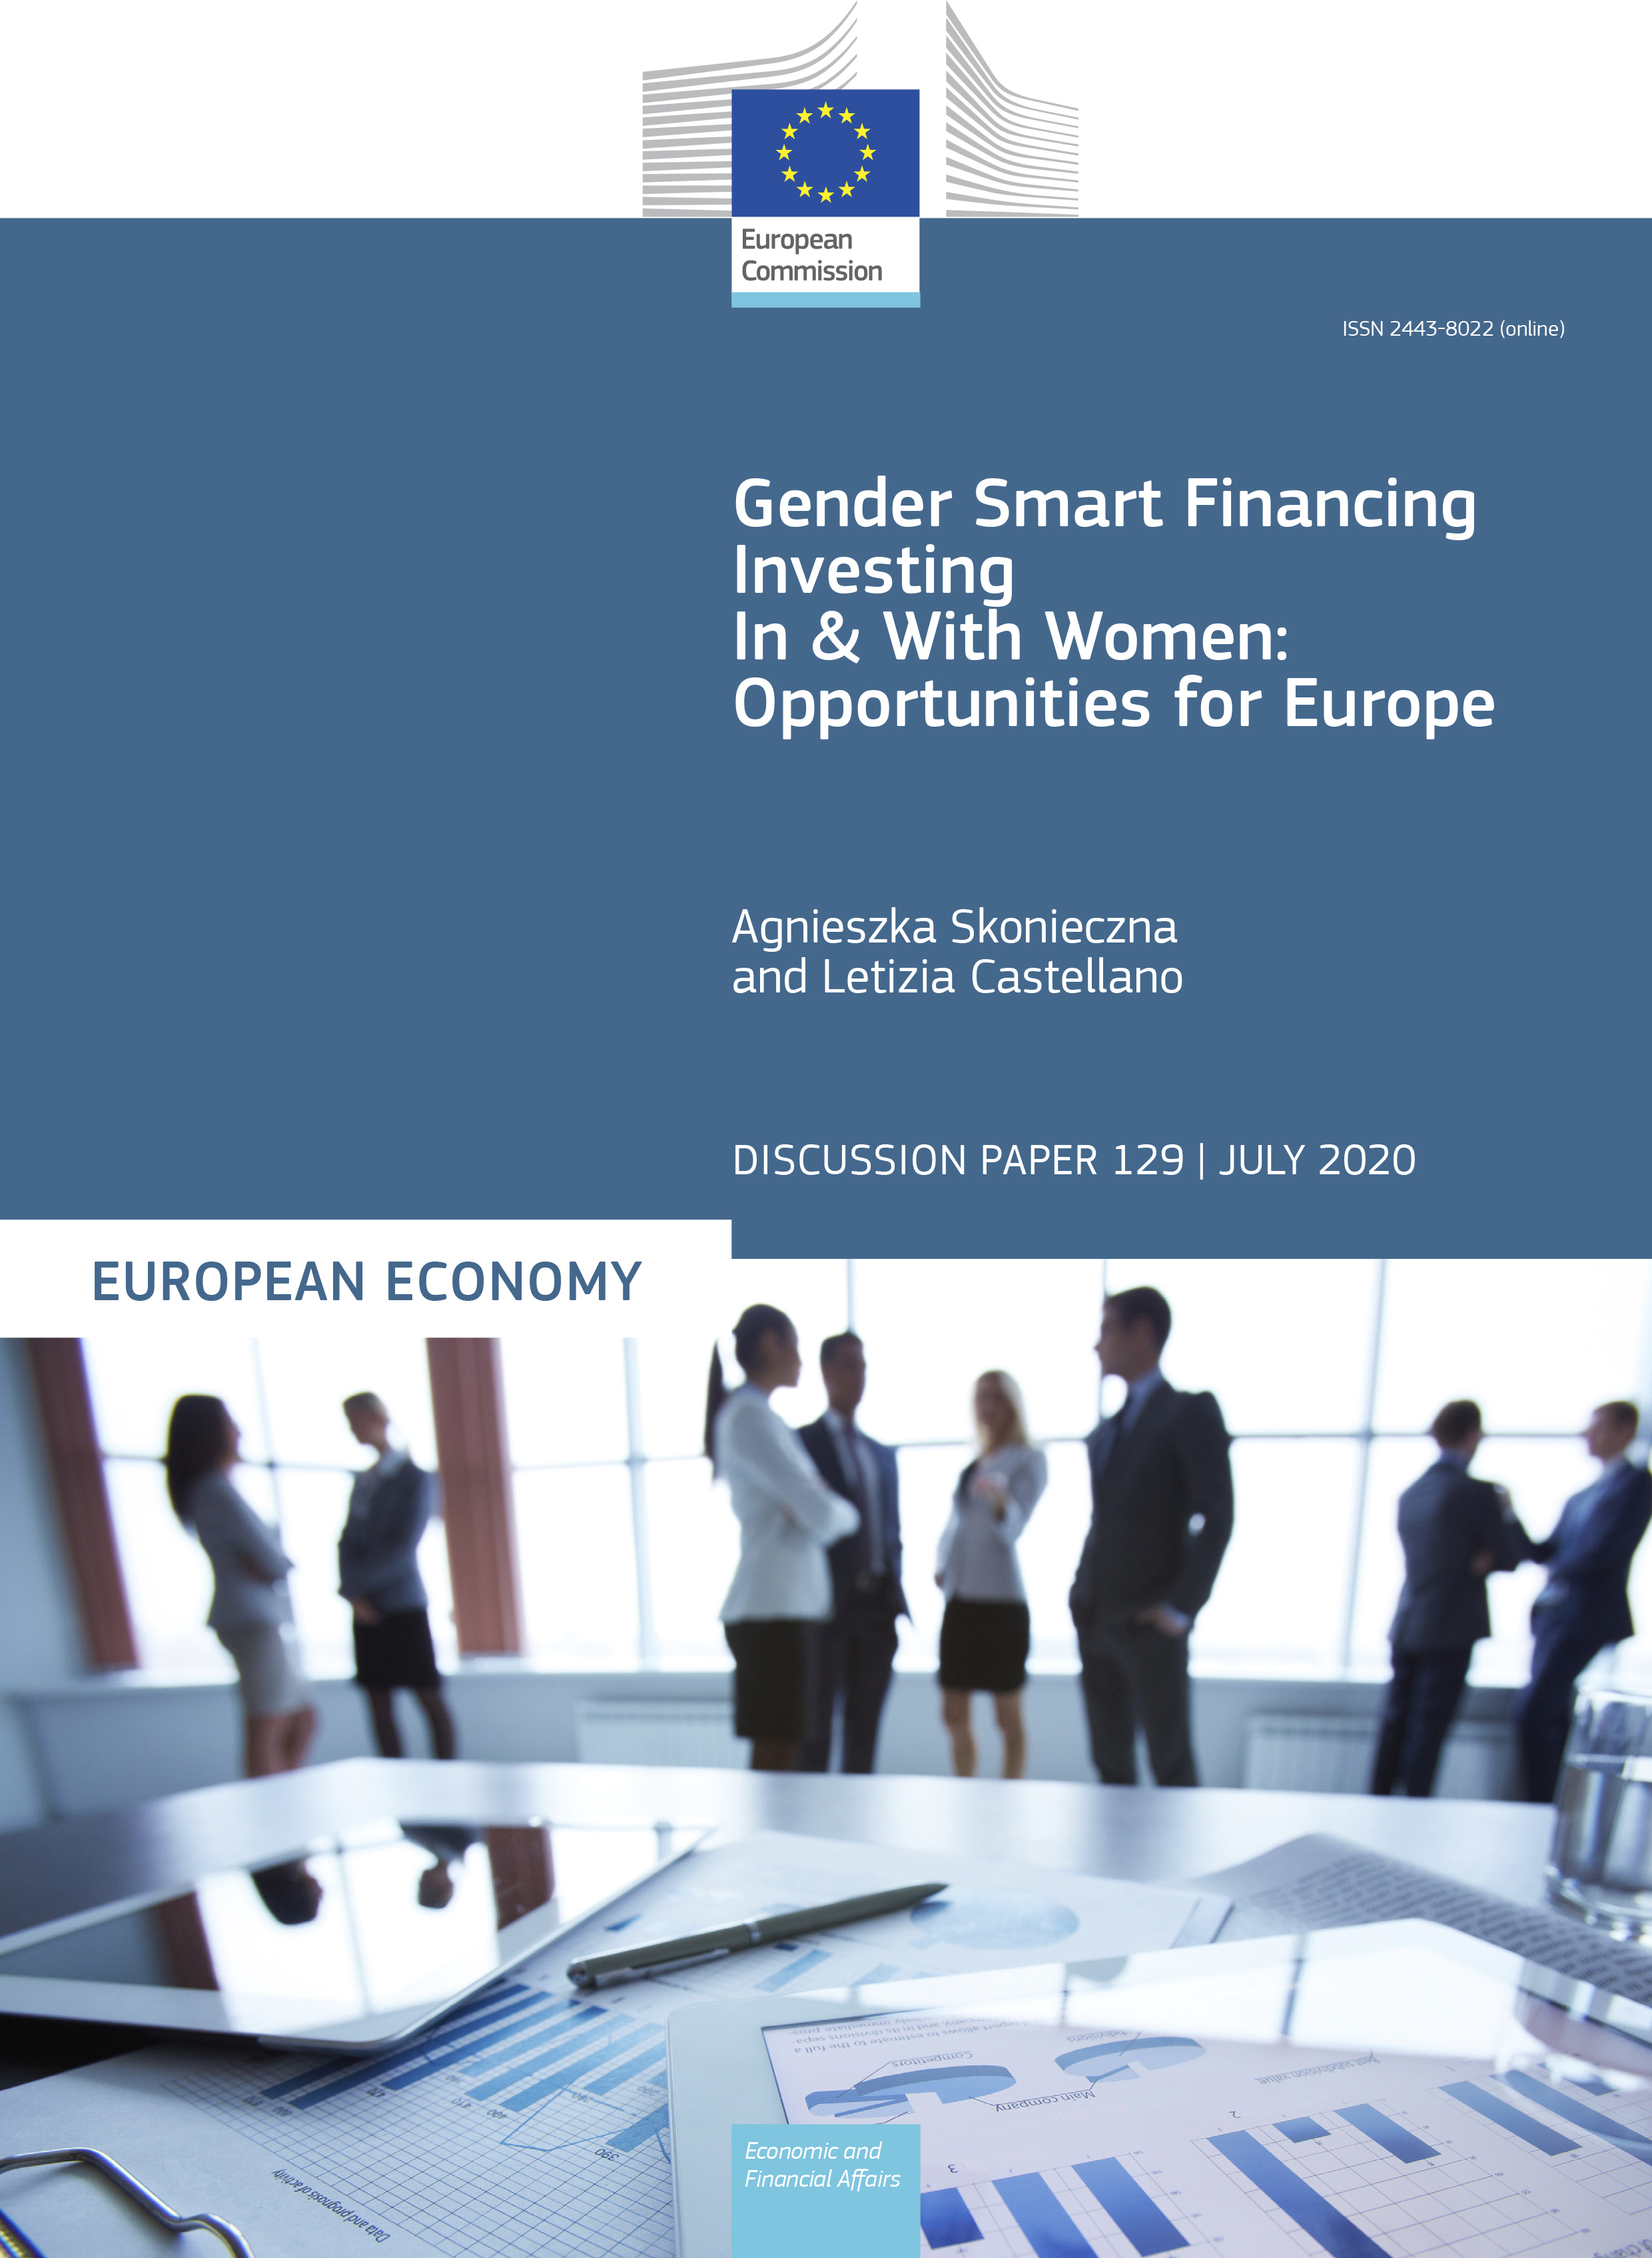 Gender Smart Financing. Investing In and With Women: Opportunities for Europe